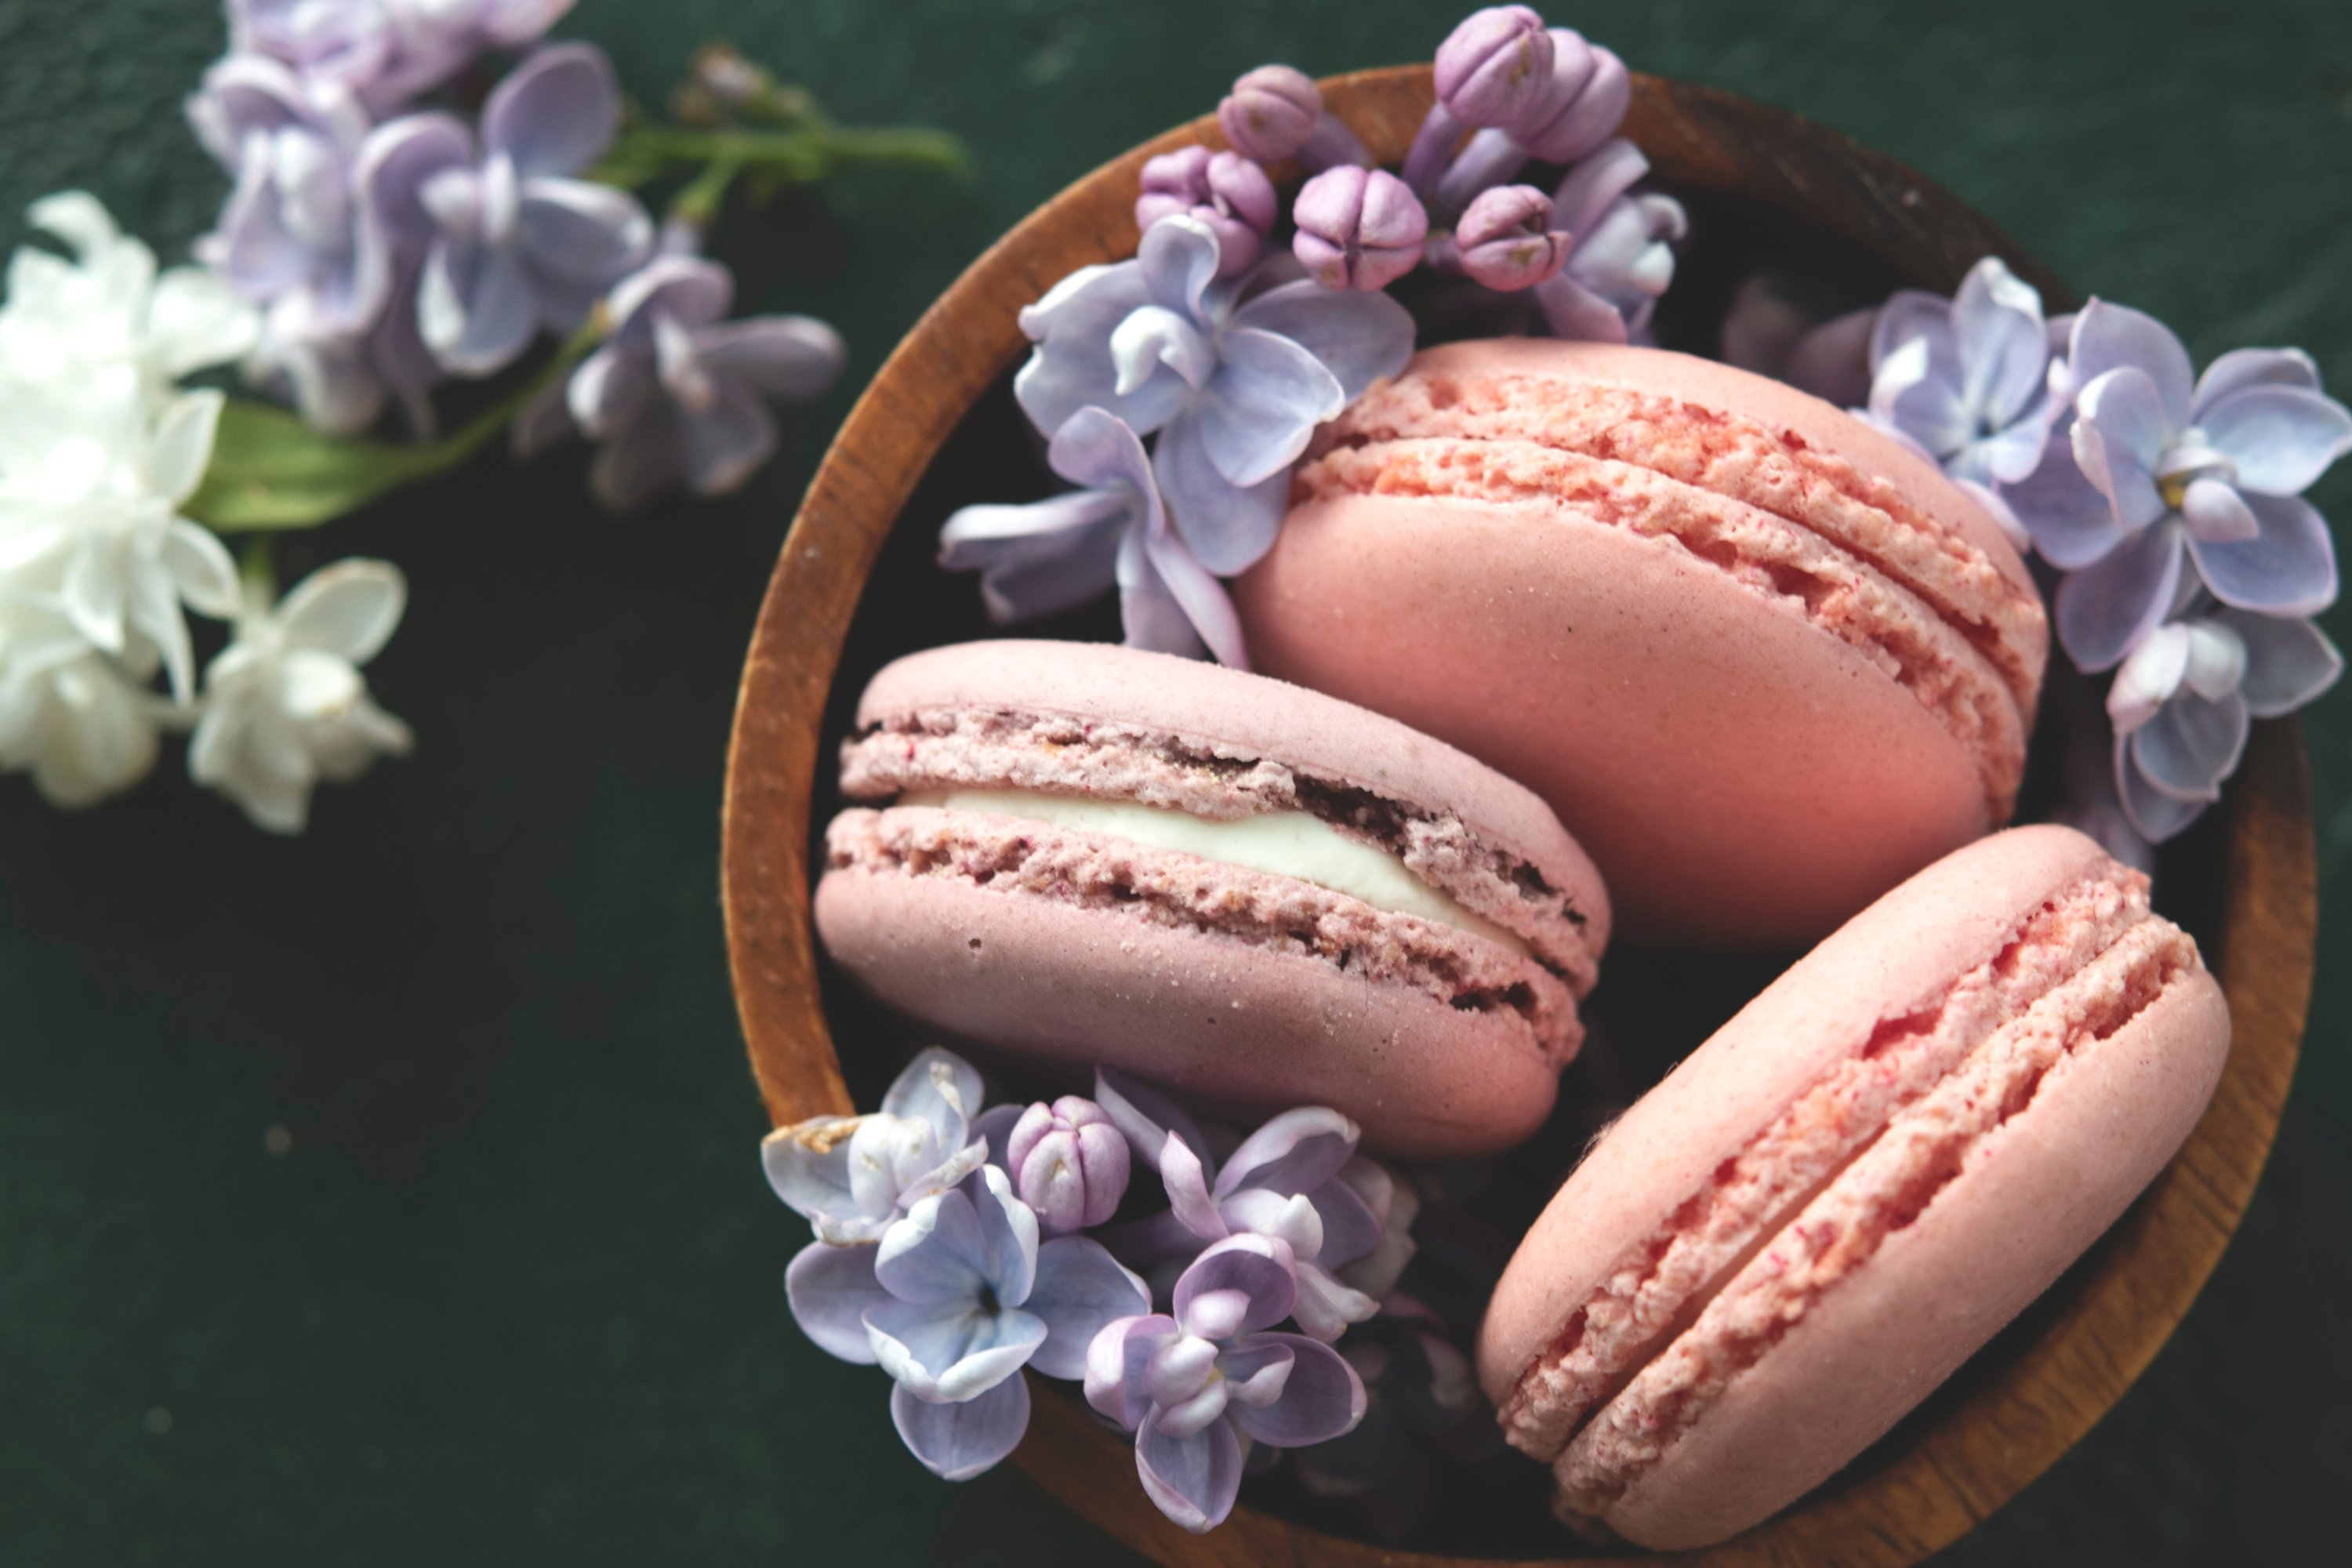 A macaron or French macaroon is a sweet meringue-based confection made with egg white, icing sugar, granulated sugar, almond meal and food coloring. (Shutterstock Photo)